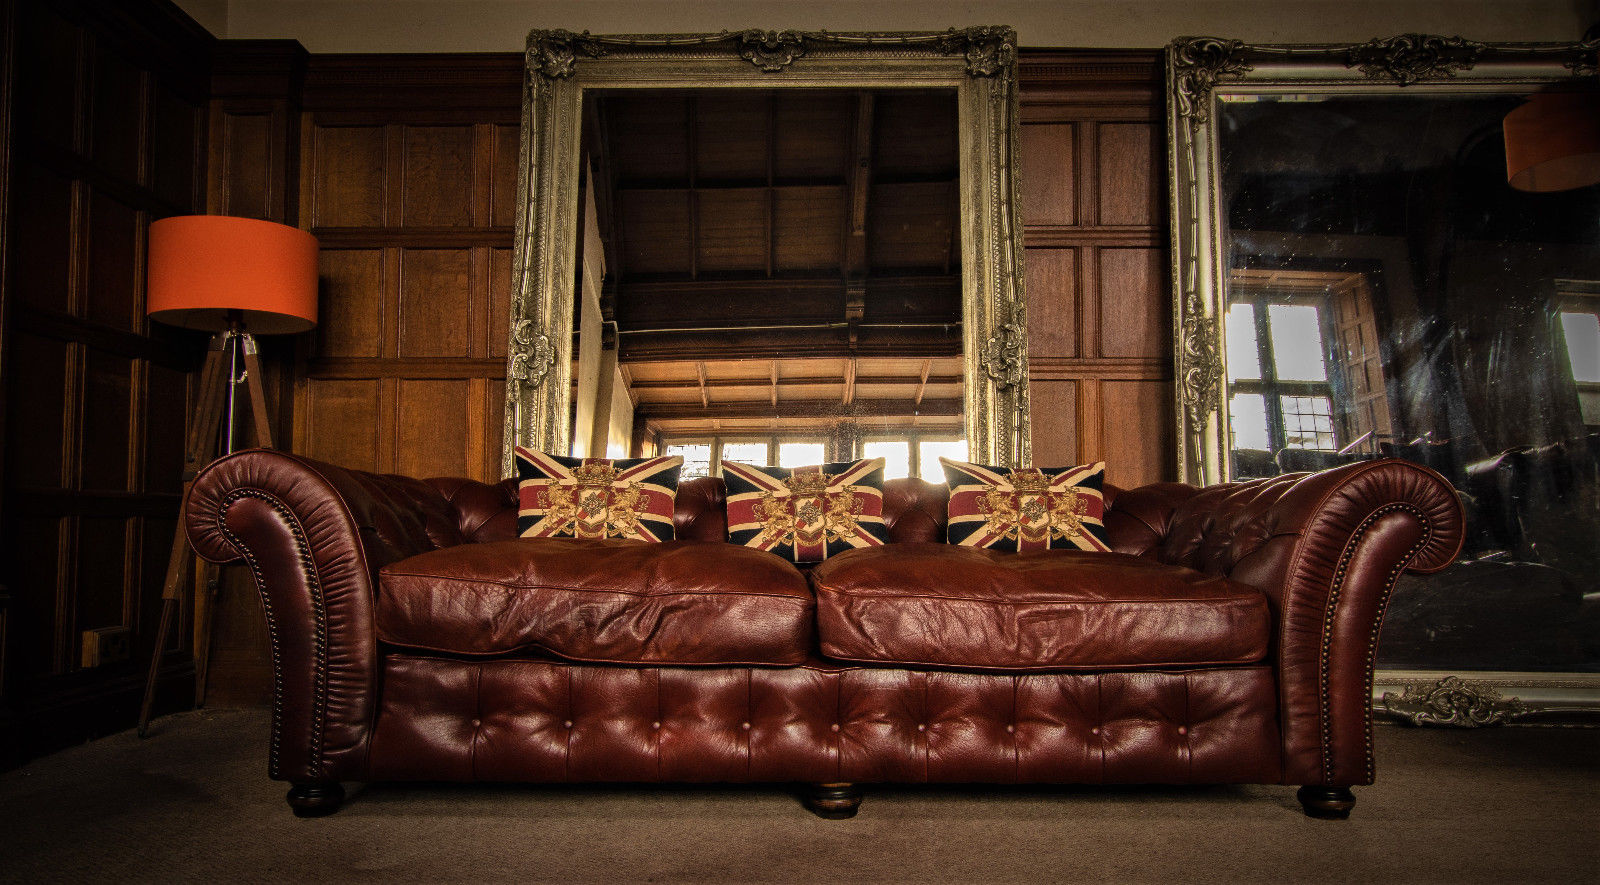 F50 1150 TETRAD GRAND BLENHEIM ANTIQUE CHESTNUT LEATHER CHESTERFIELD 4 SEATER CLUB SOFA